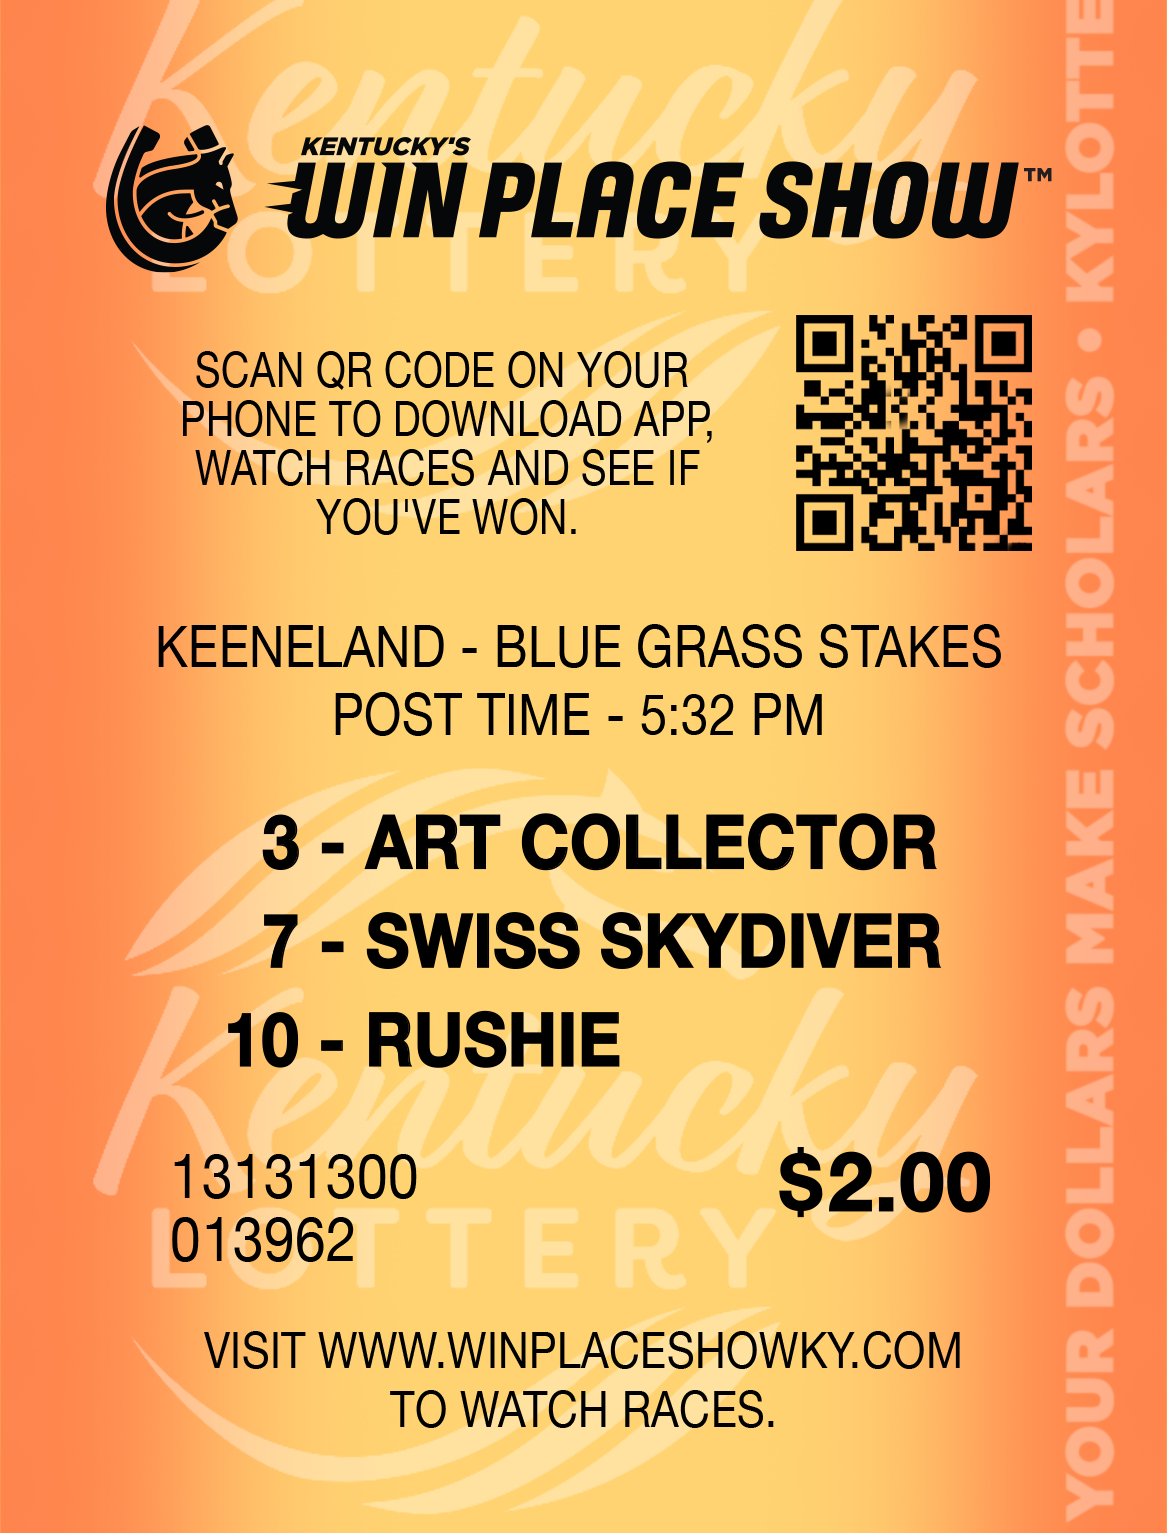 win place show